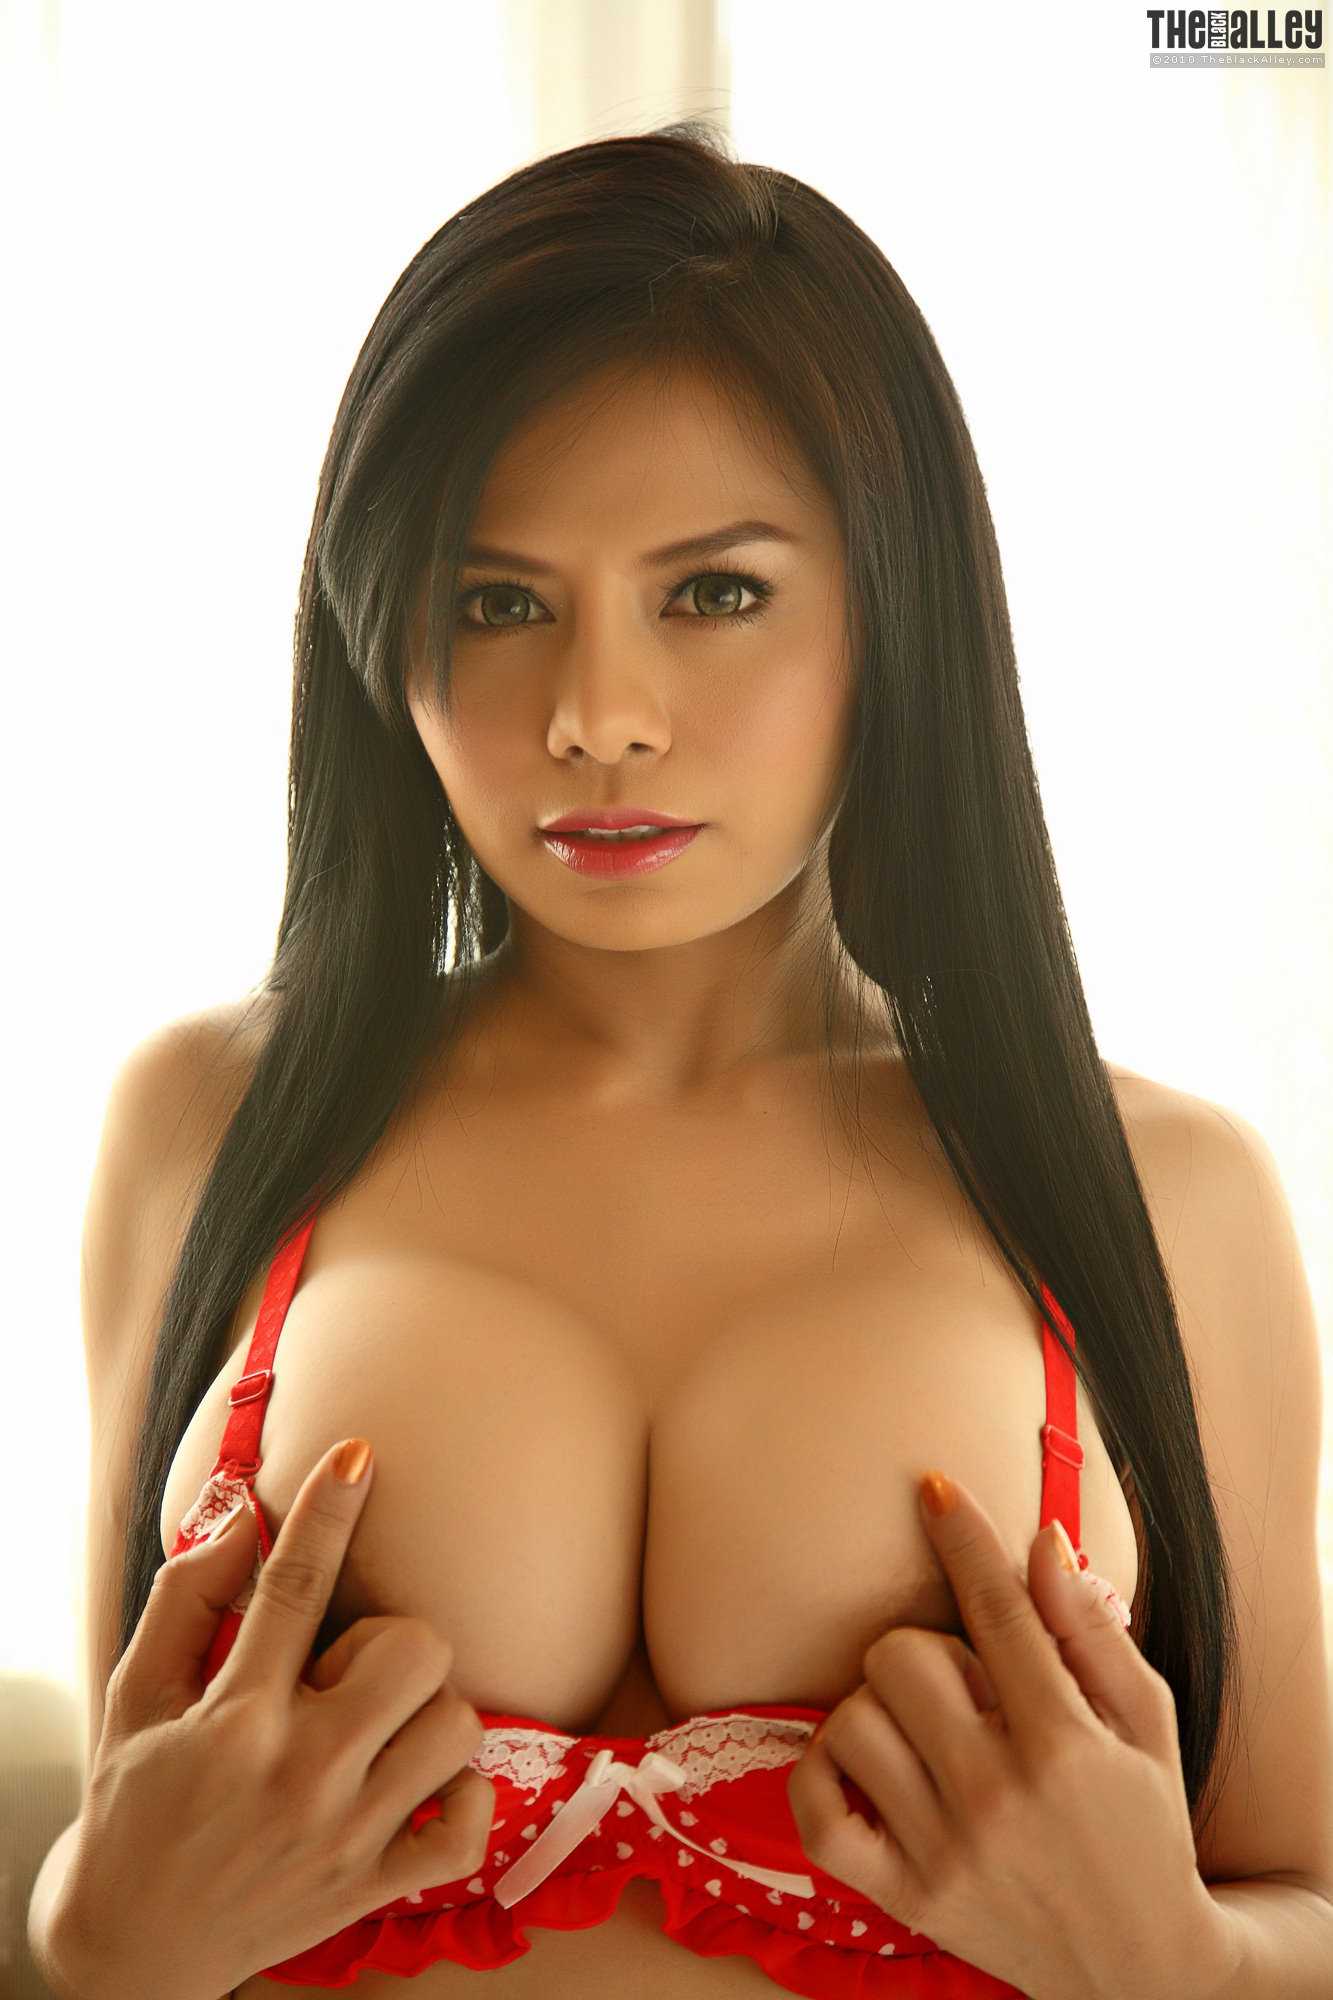 Busty cute asian girls nude simply does